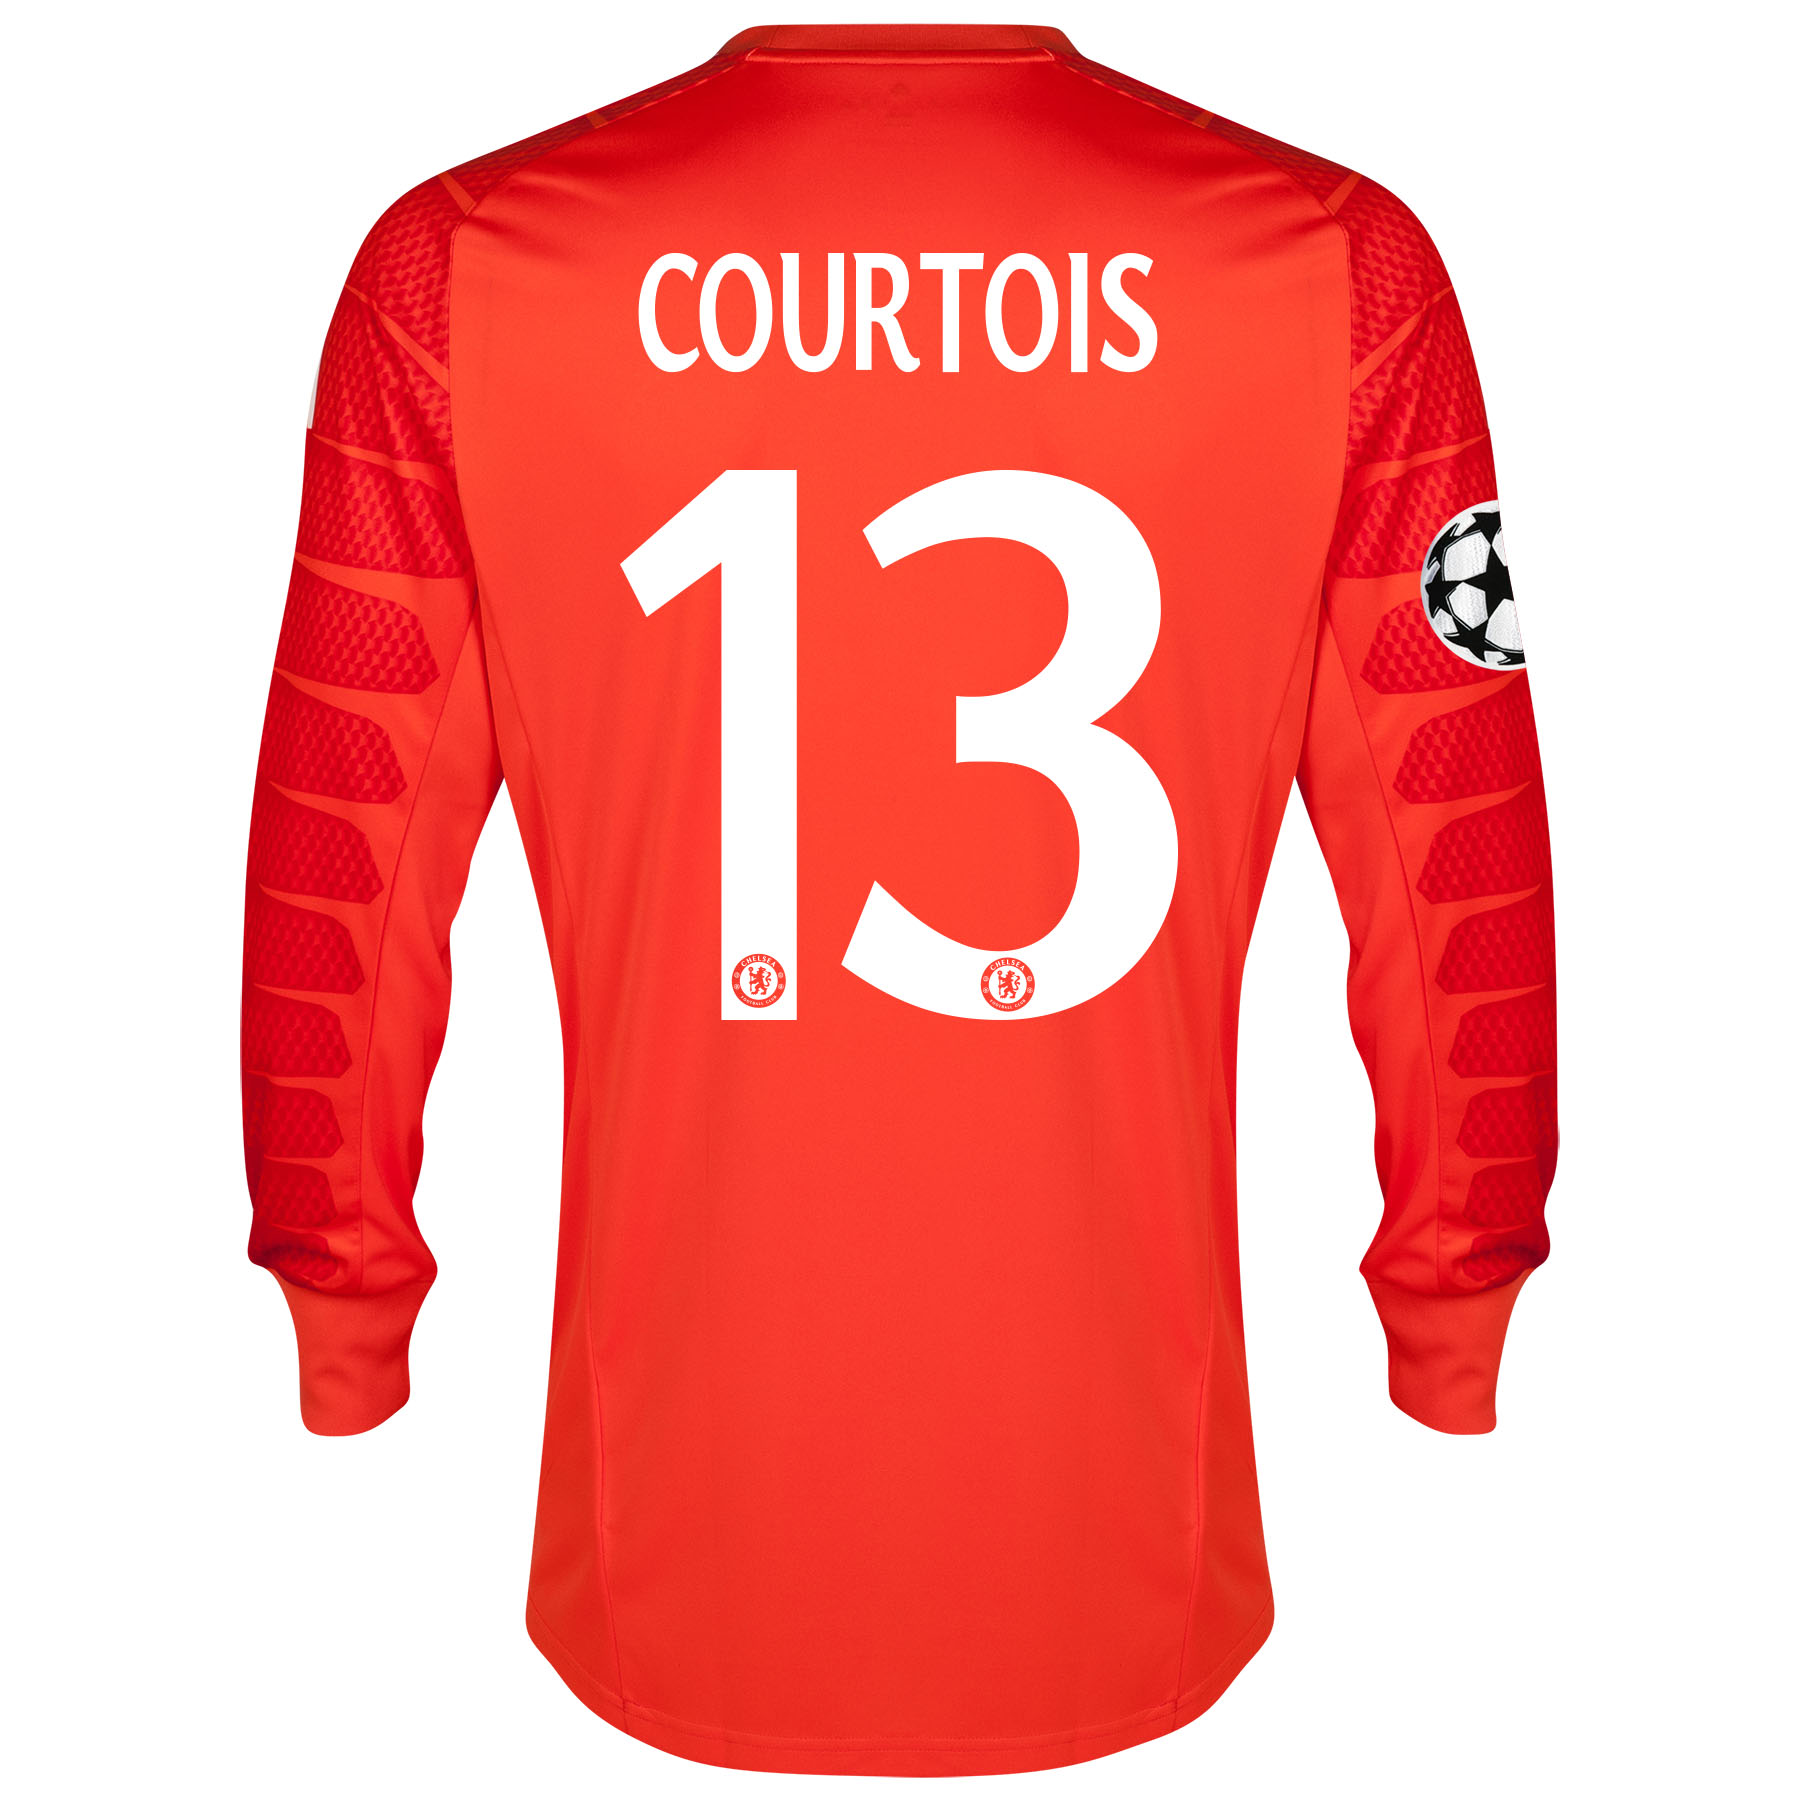 Chelsea UEFA Champions League Goalkeeper Shirt 2014/15 - Solar with Courtois 13 printing